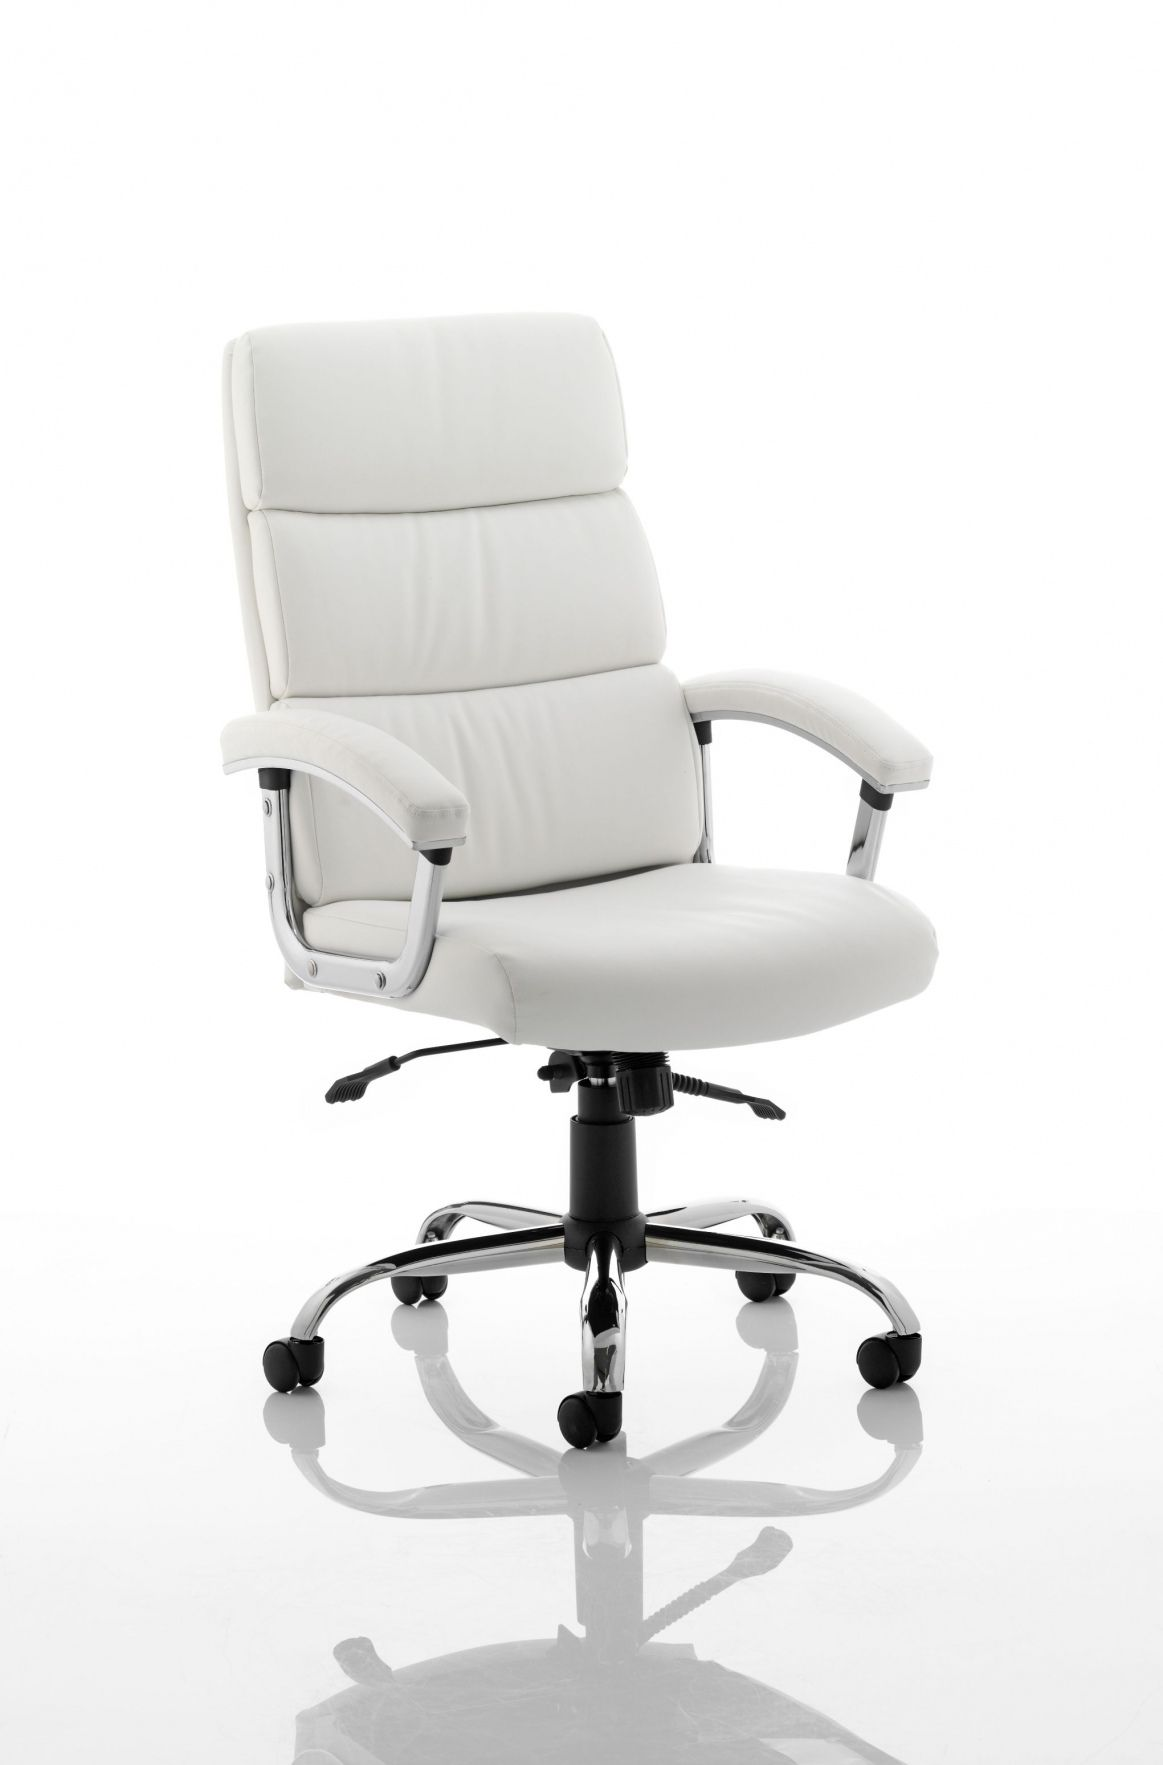 70 Home Office Chairs Uk Best Cheap Modern Furniture Check More At Http Steelbookreview Com 2018 Home Office Chair Cute Desk Chair Small Desk Chairs Chair